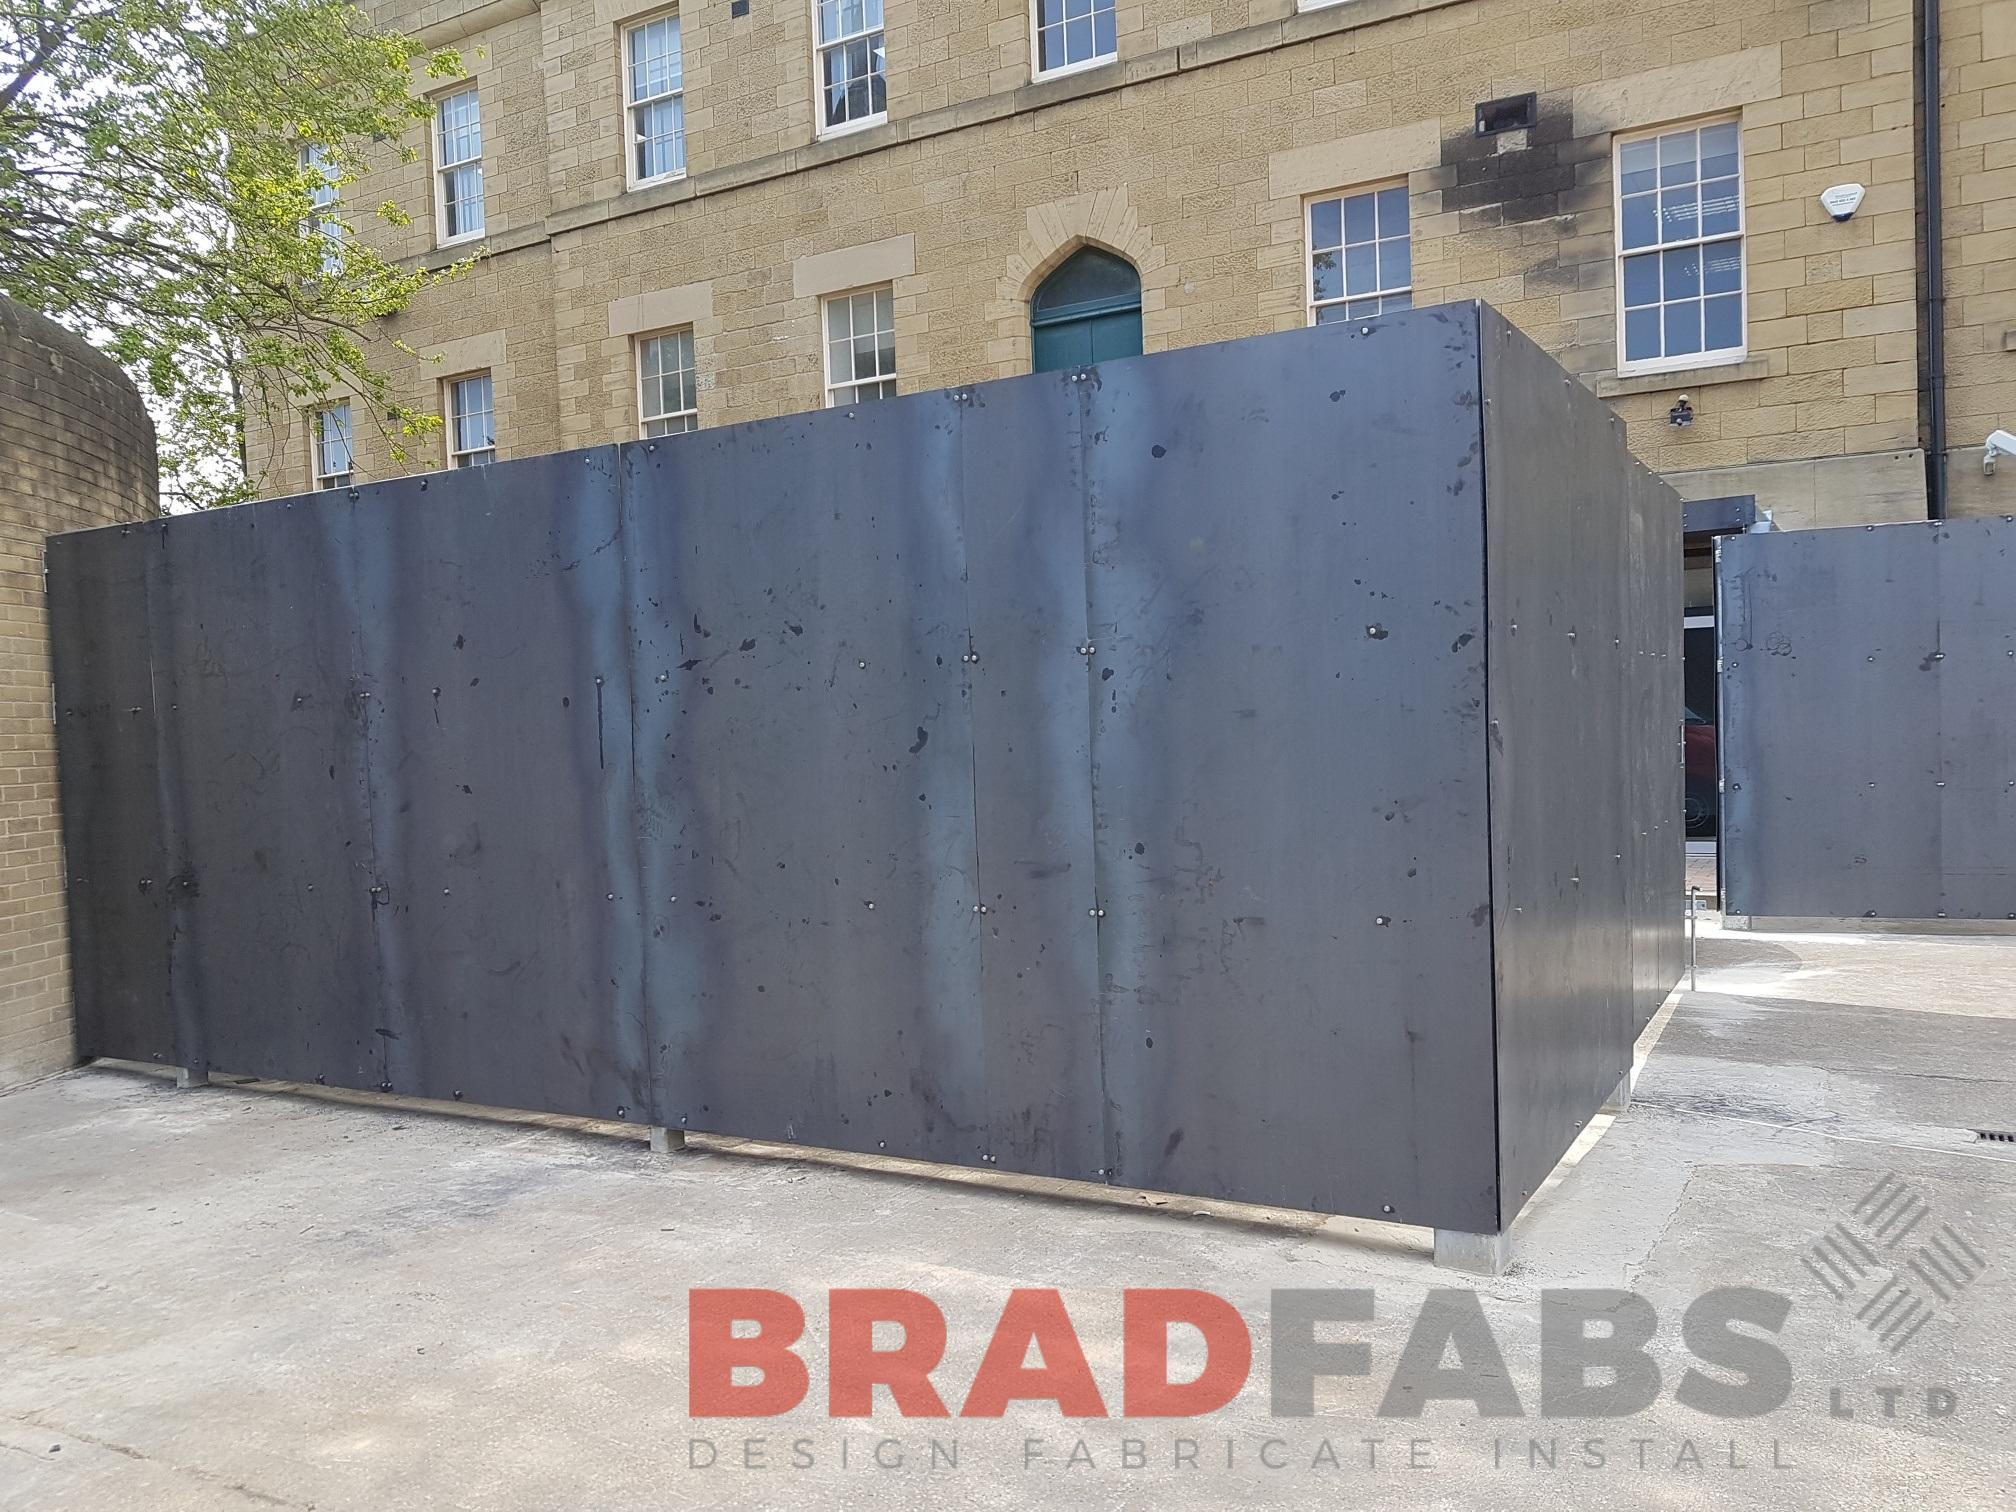 bespoke compound barrier manufactured in corten steel by bradfabs